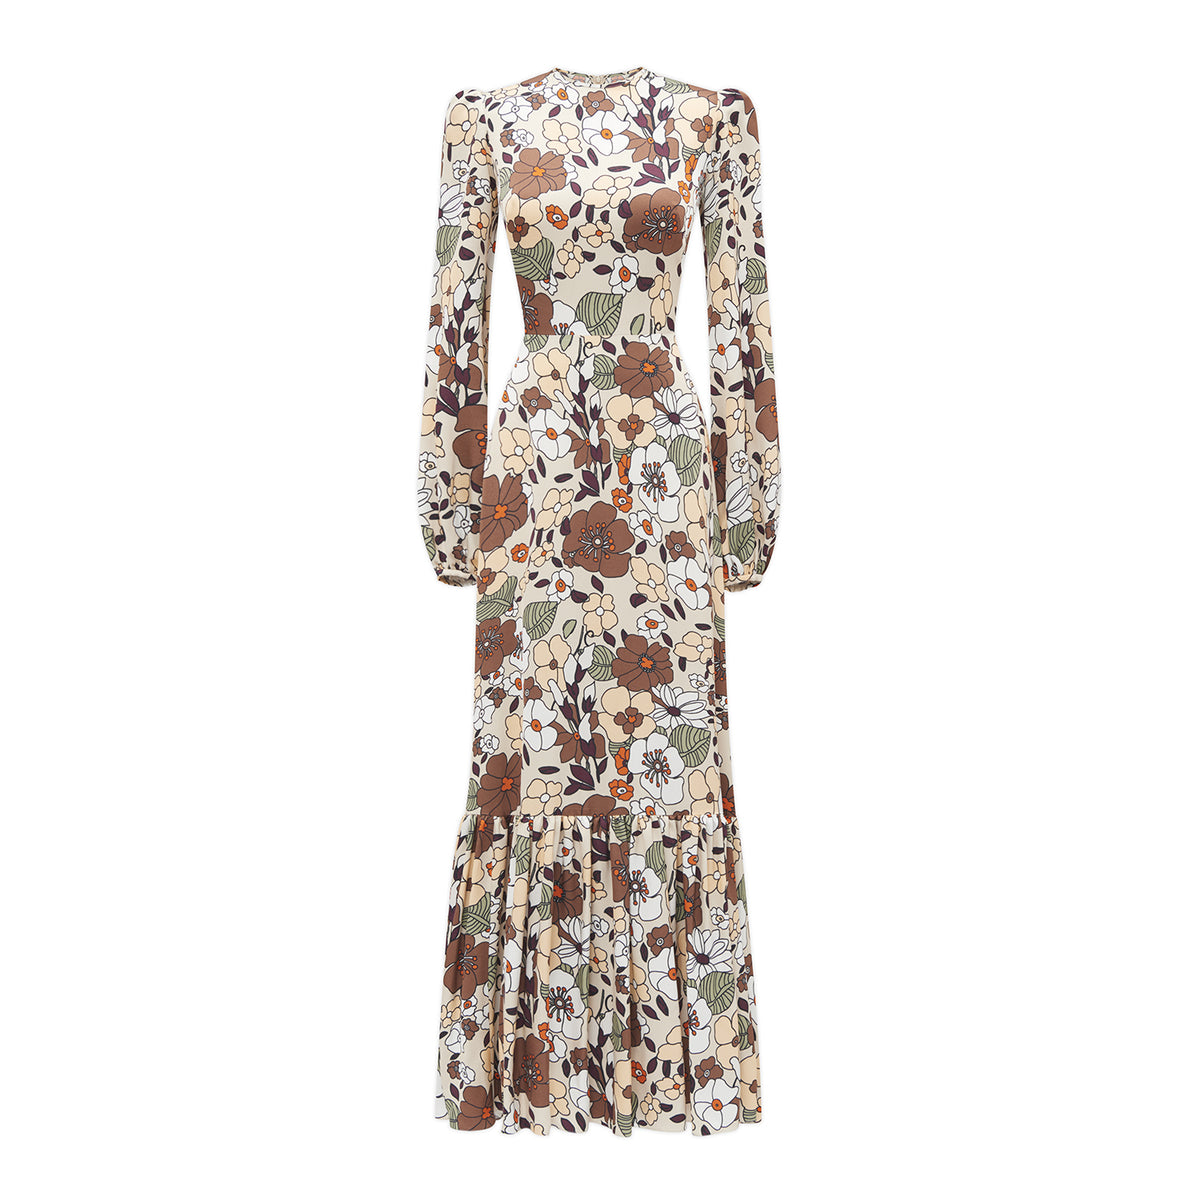 THE FLORAL CRÊPE BELLE DRESS